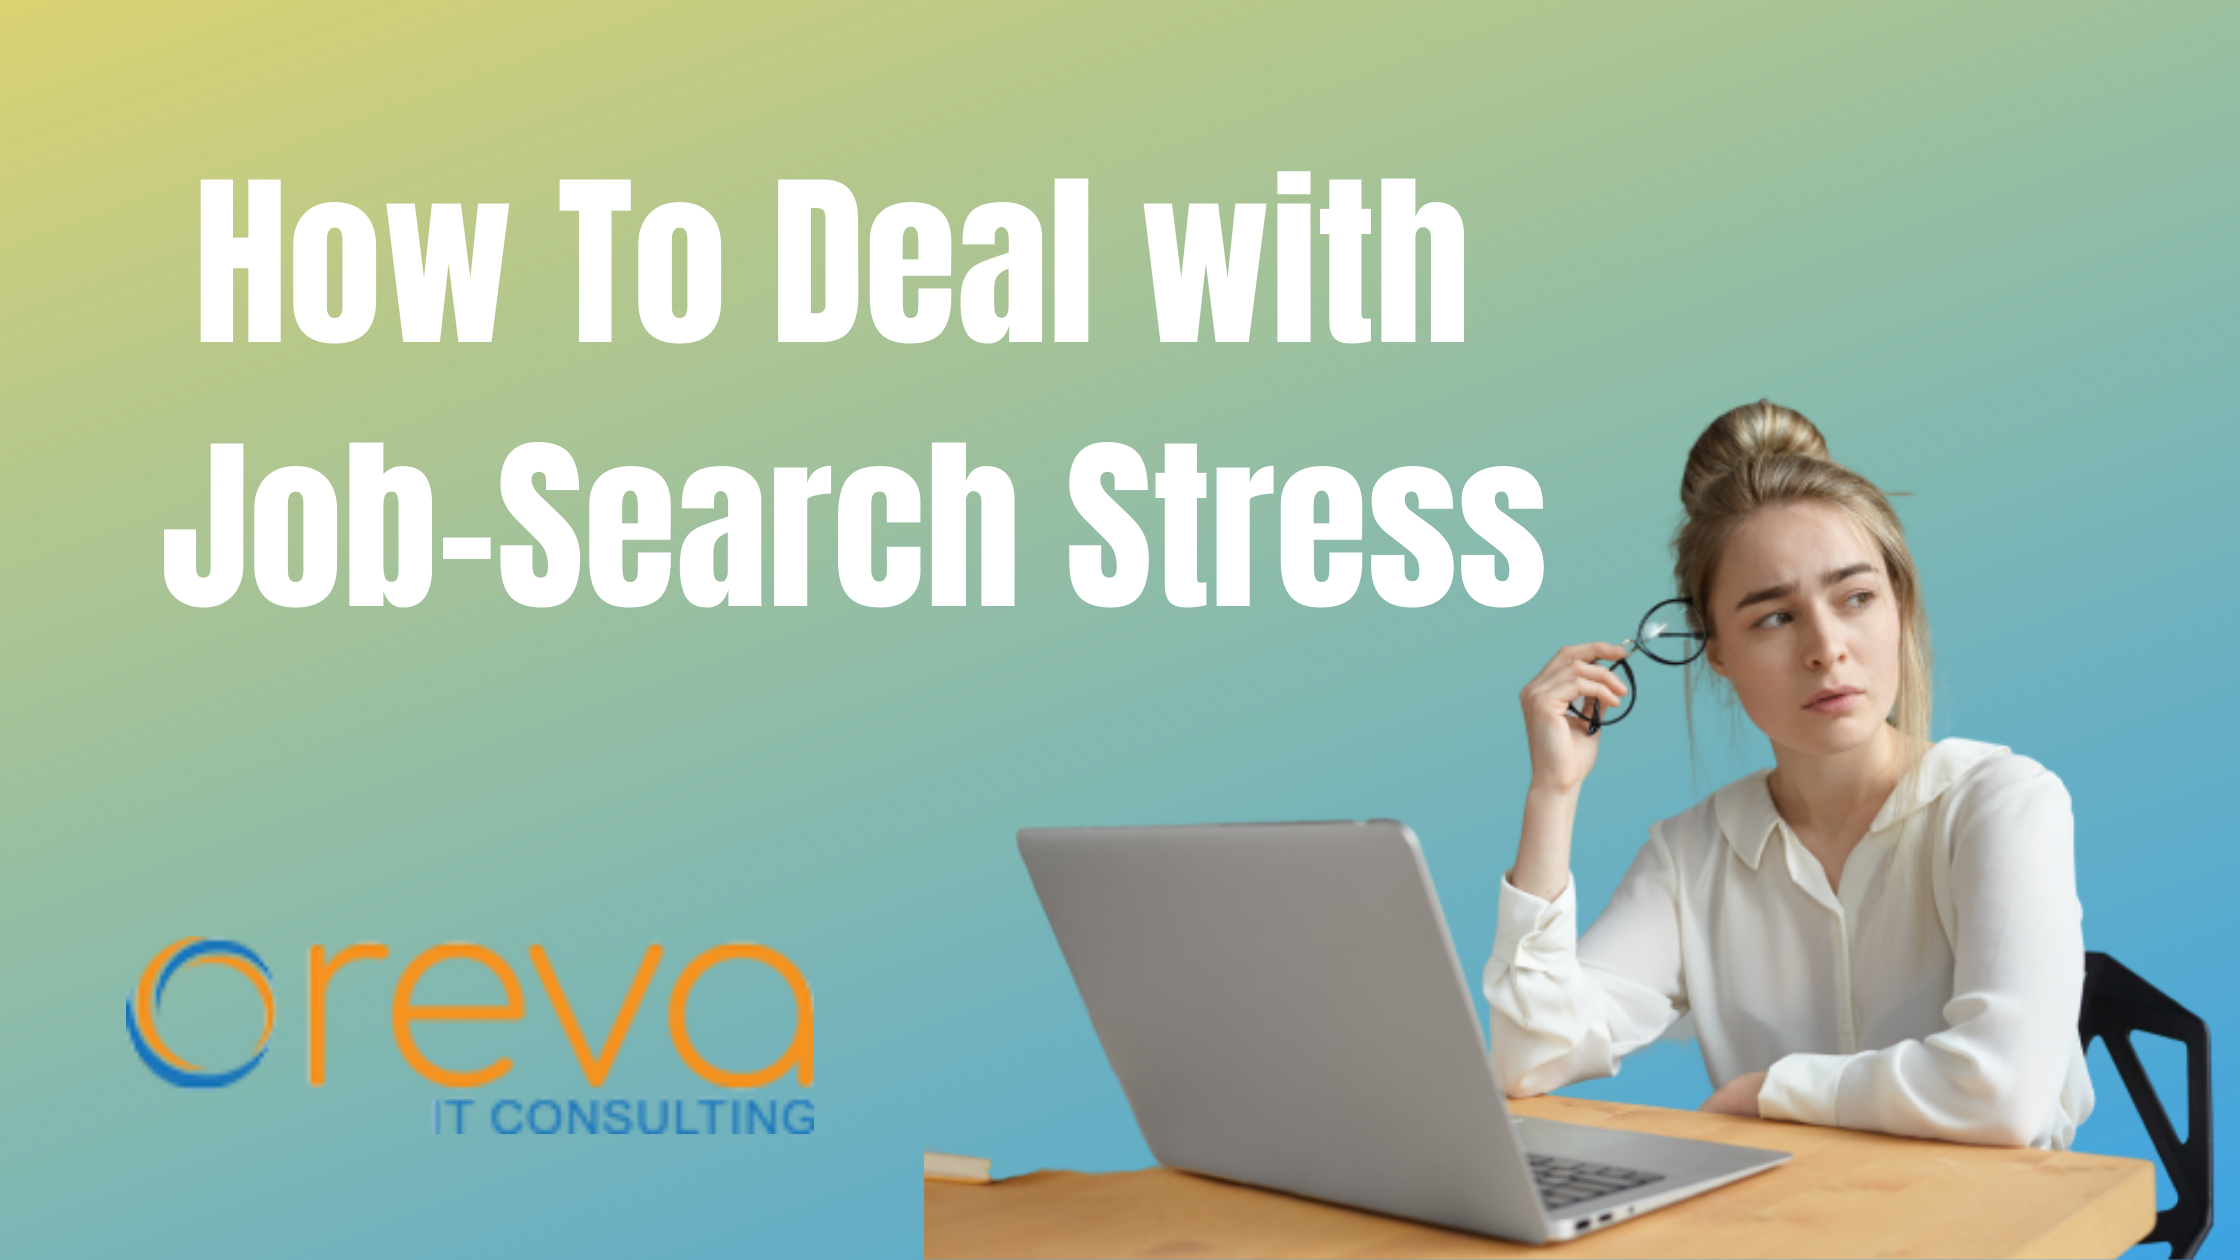 How To Deal with Job-Search Stress